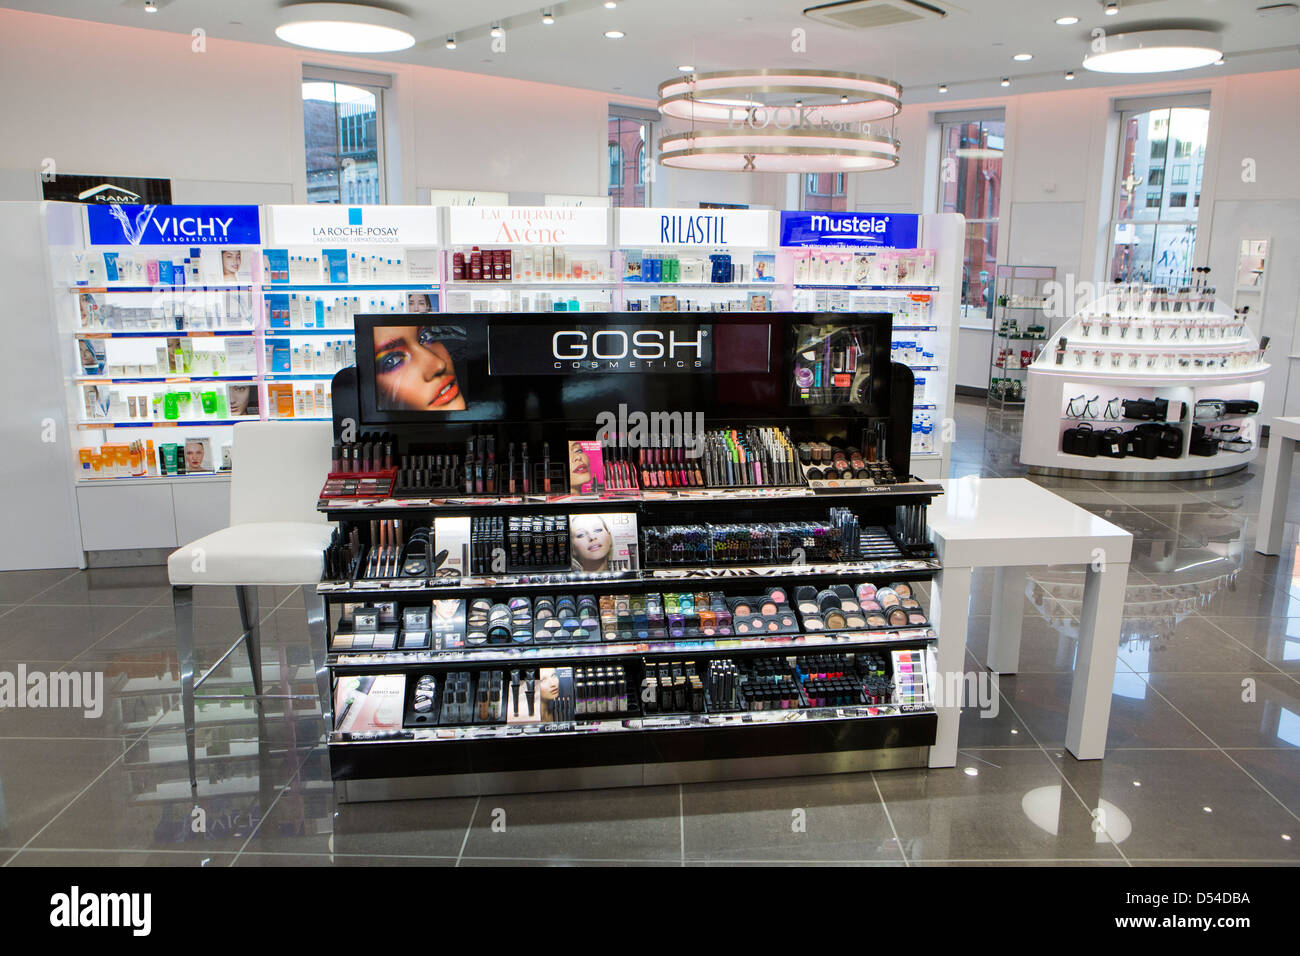 High-end cosmetics on display at a Walgreens Flagship store in downtown Washington, DC. - Stock Image